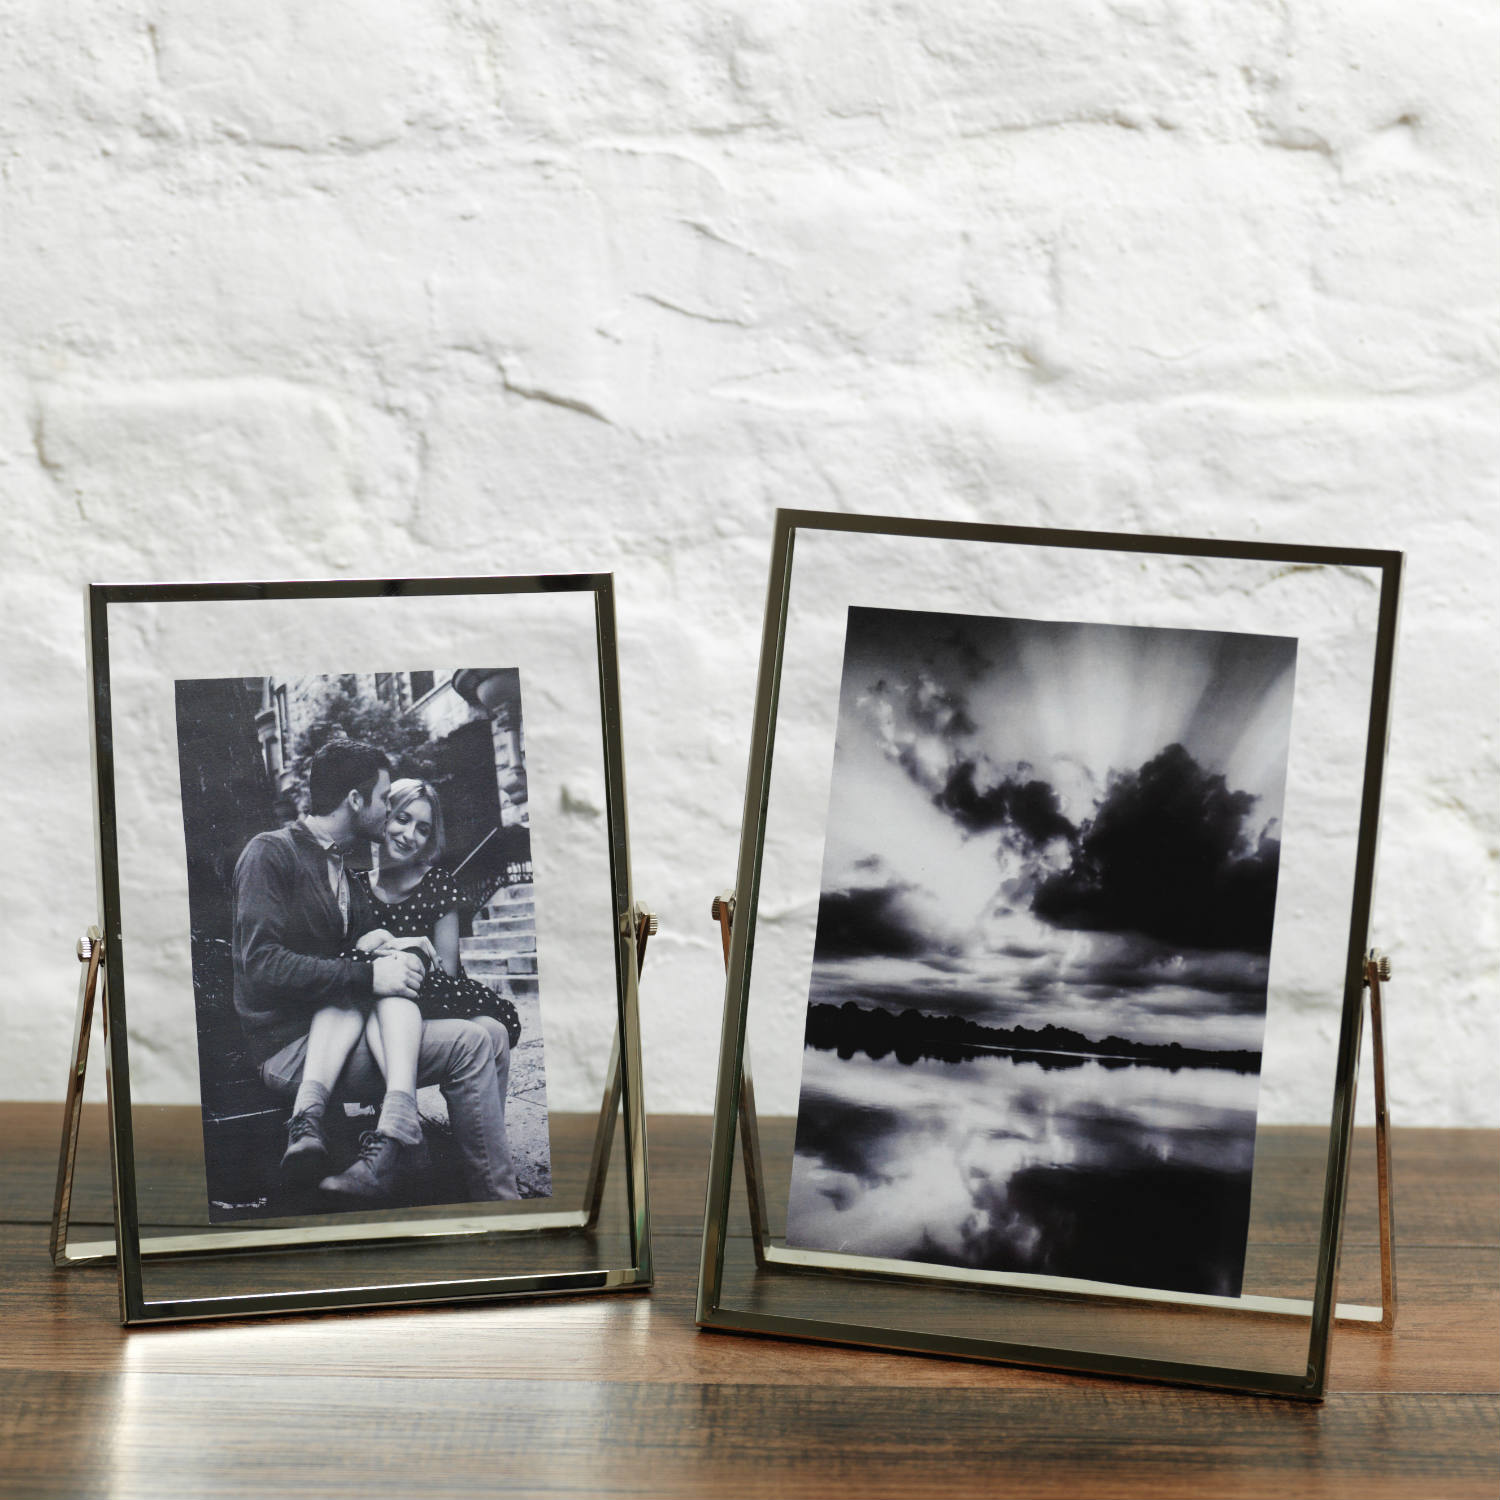 easel photo frame 4x6 - Easel For Picture Frame